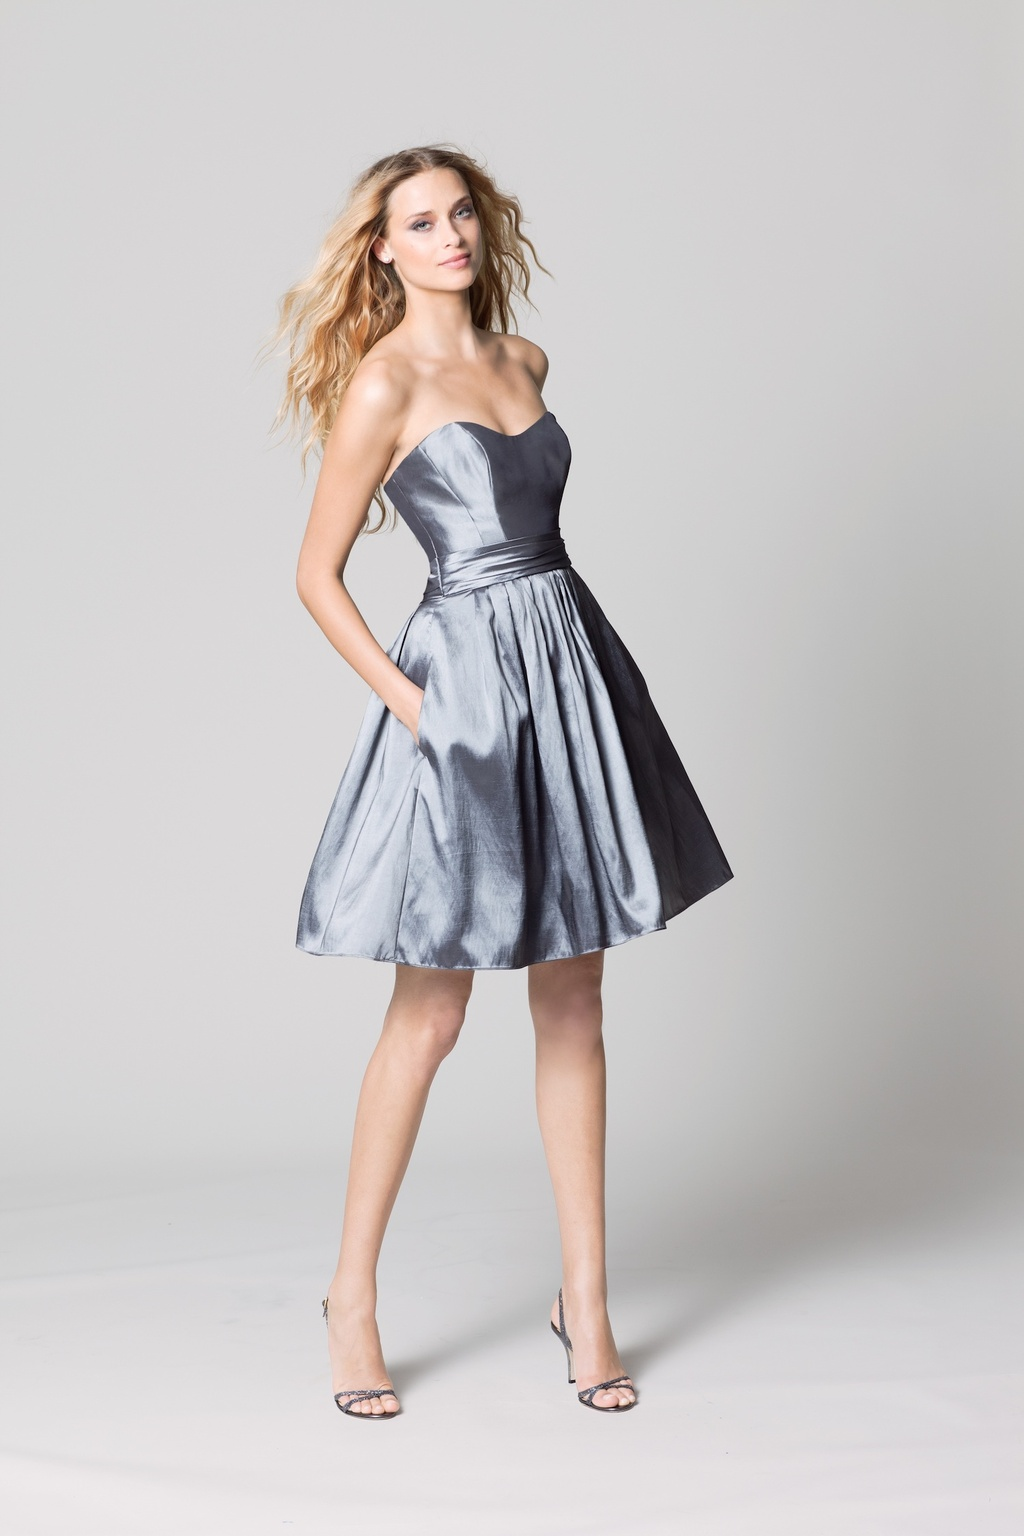 Affordable-bridesmaids-dresses-fall-2012-wtoo-by-watters-bridal-party-silver-shimmer-with-pockets.full